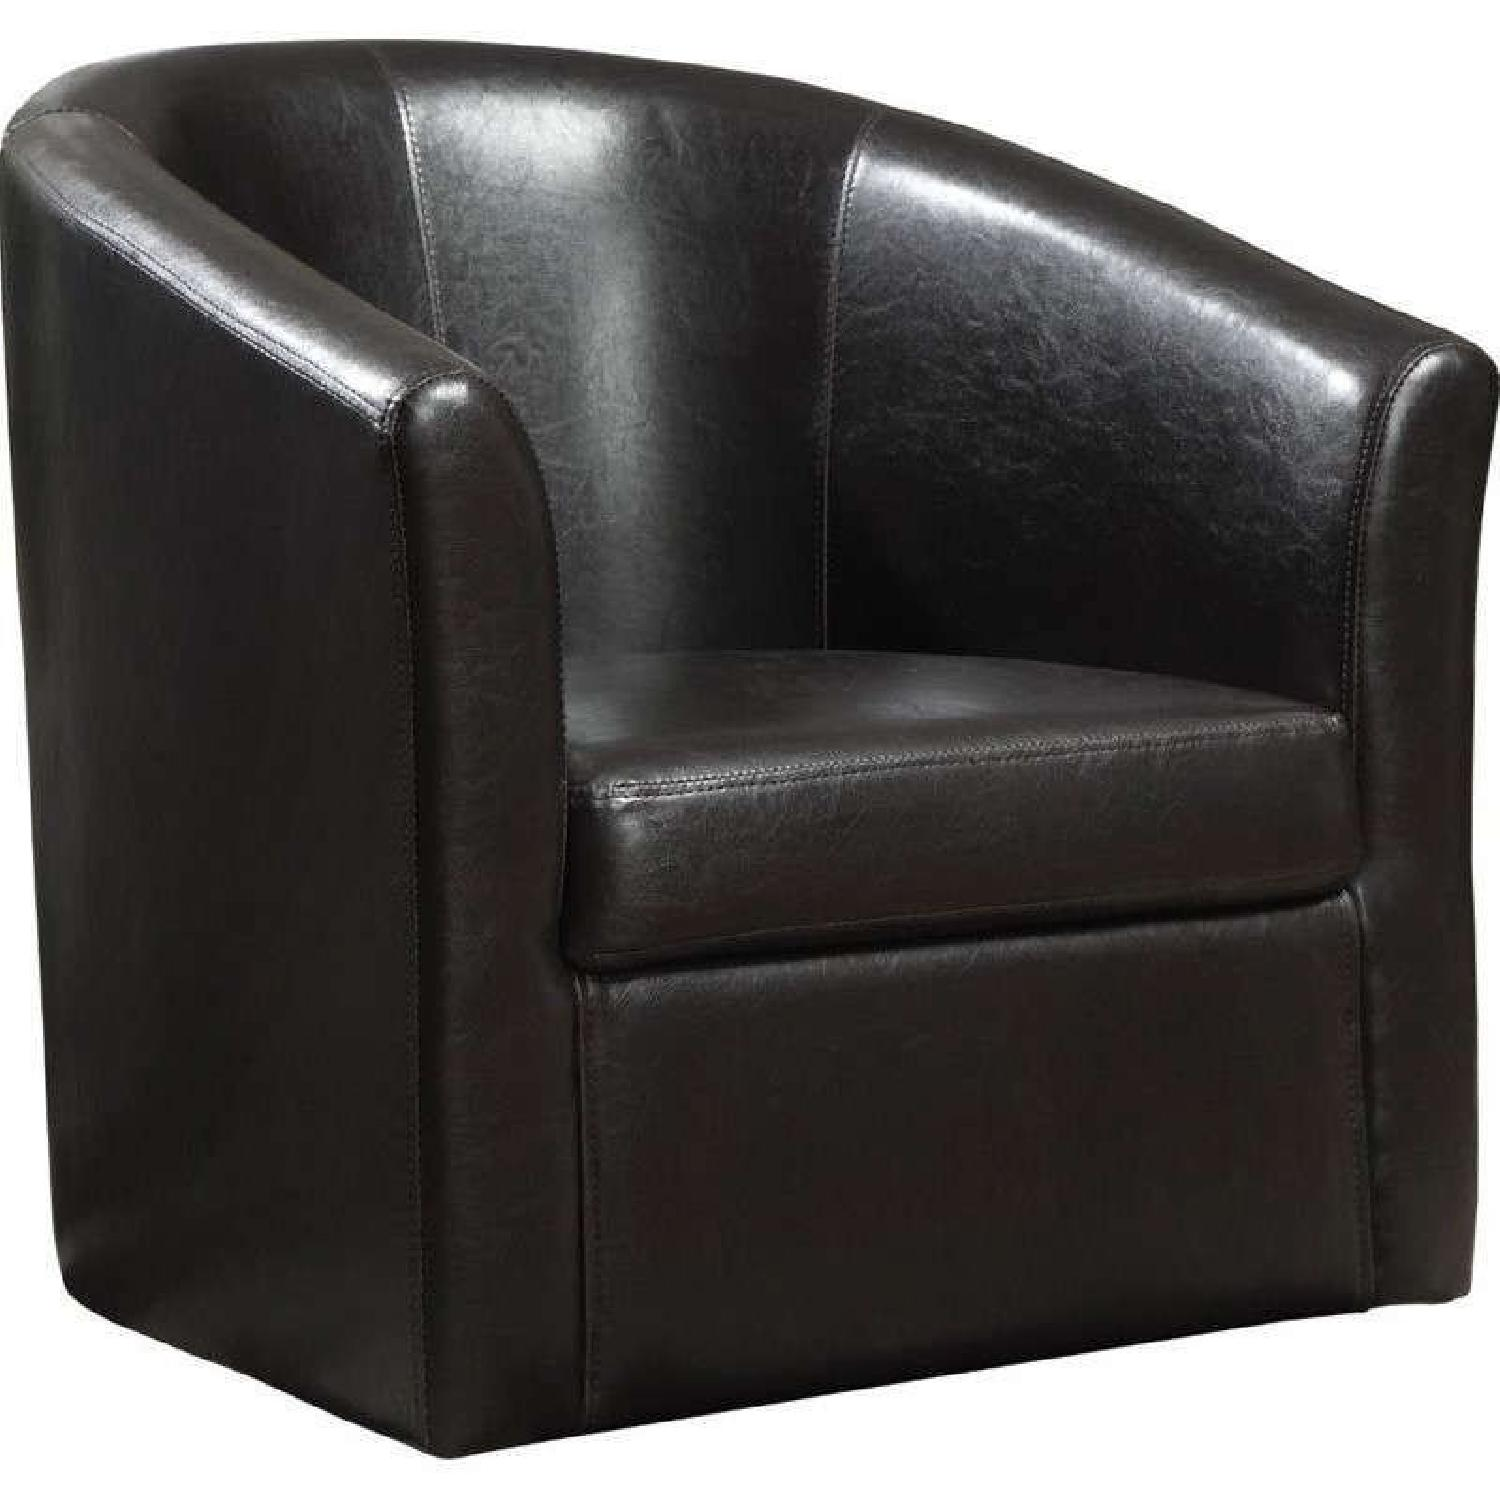 Modern Accent Chair in Dark Brown Faux Leather